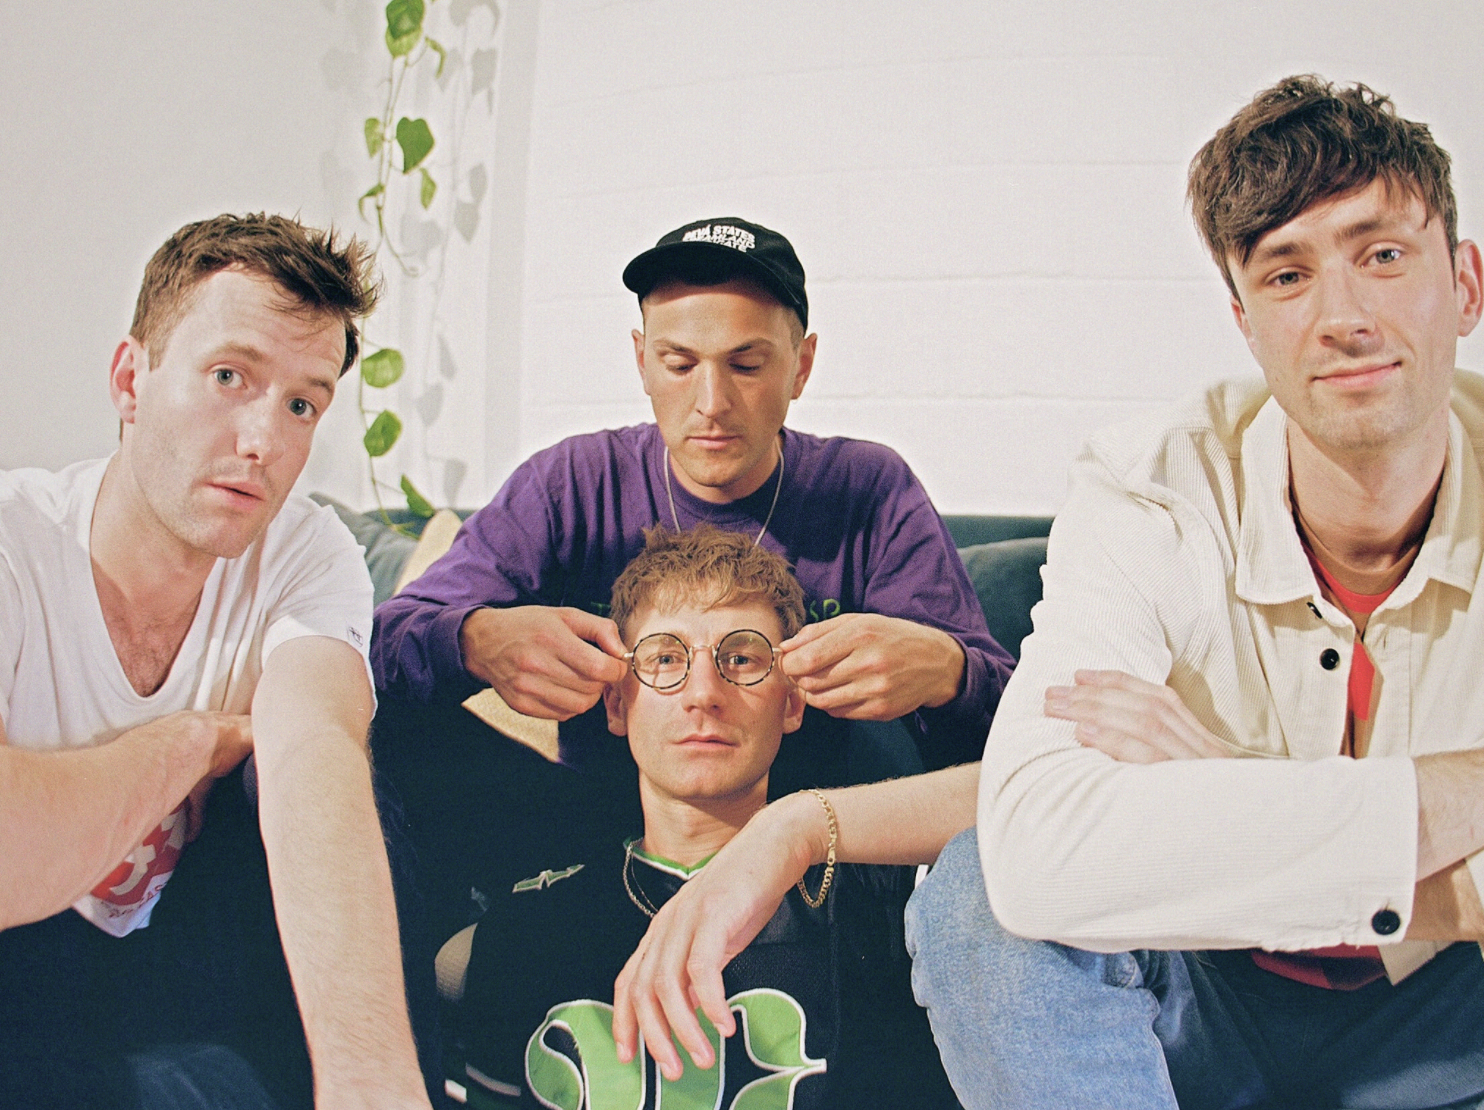 Glass Animals drops new track ahead of 'Dreamland' album release